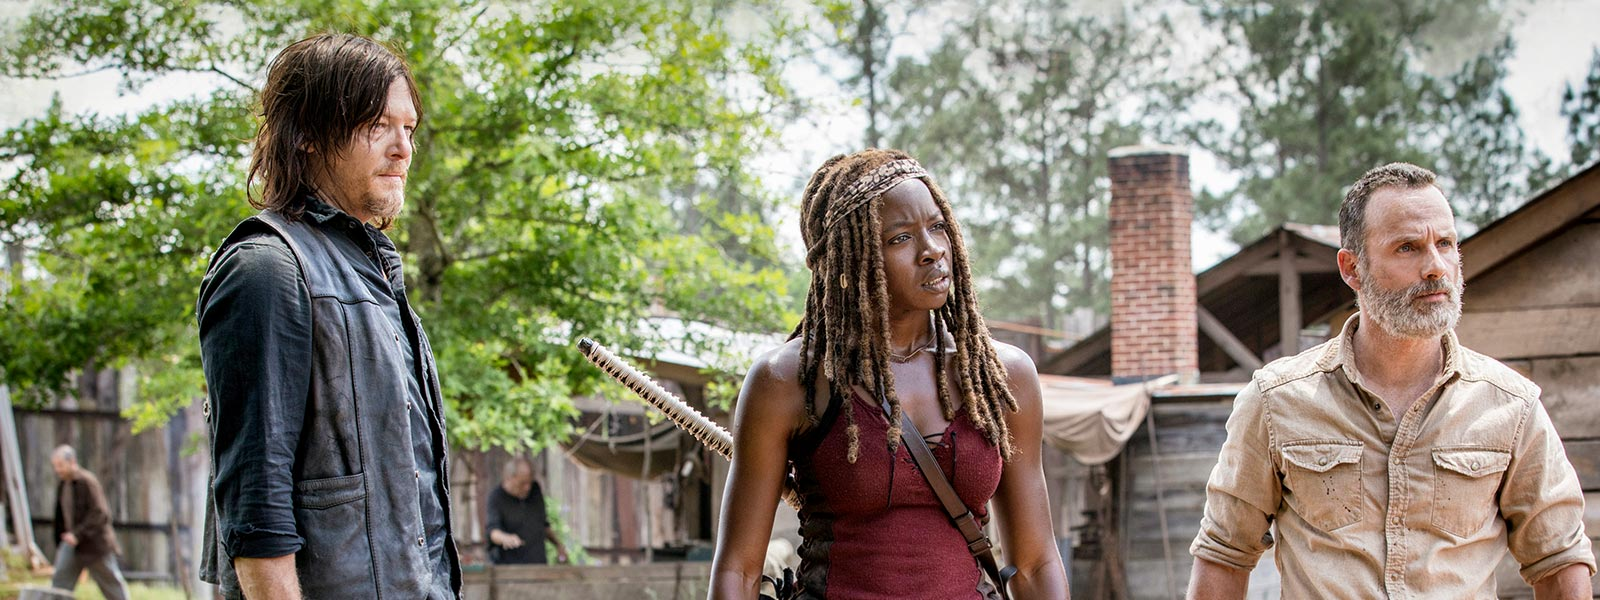 the-walking-dead-episode-901-daryl-reedus-michonne-gurira-prep-800×600